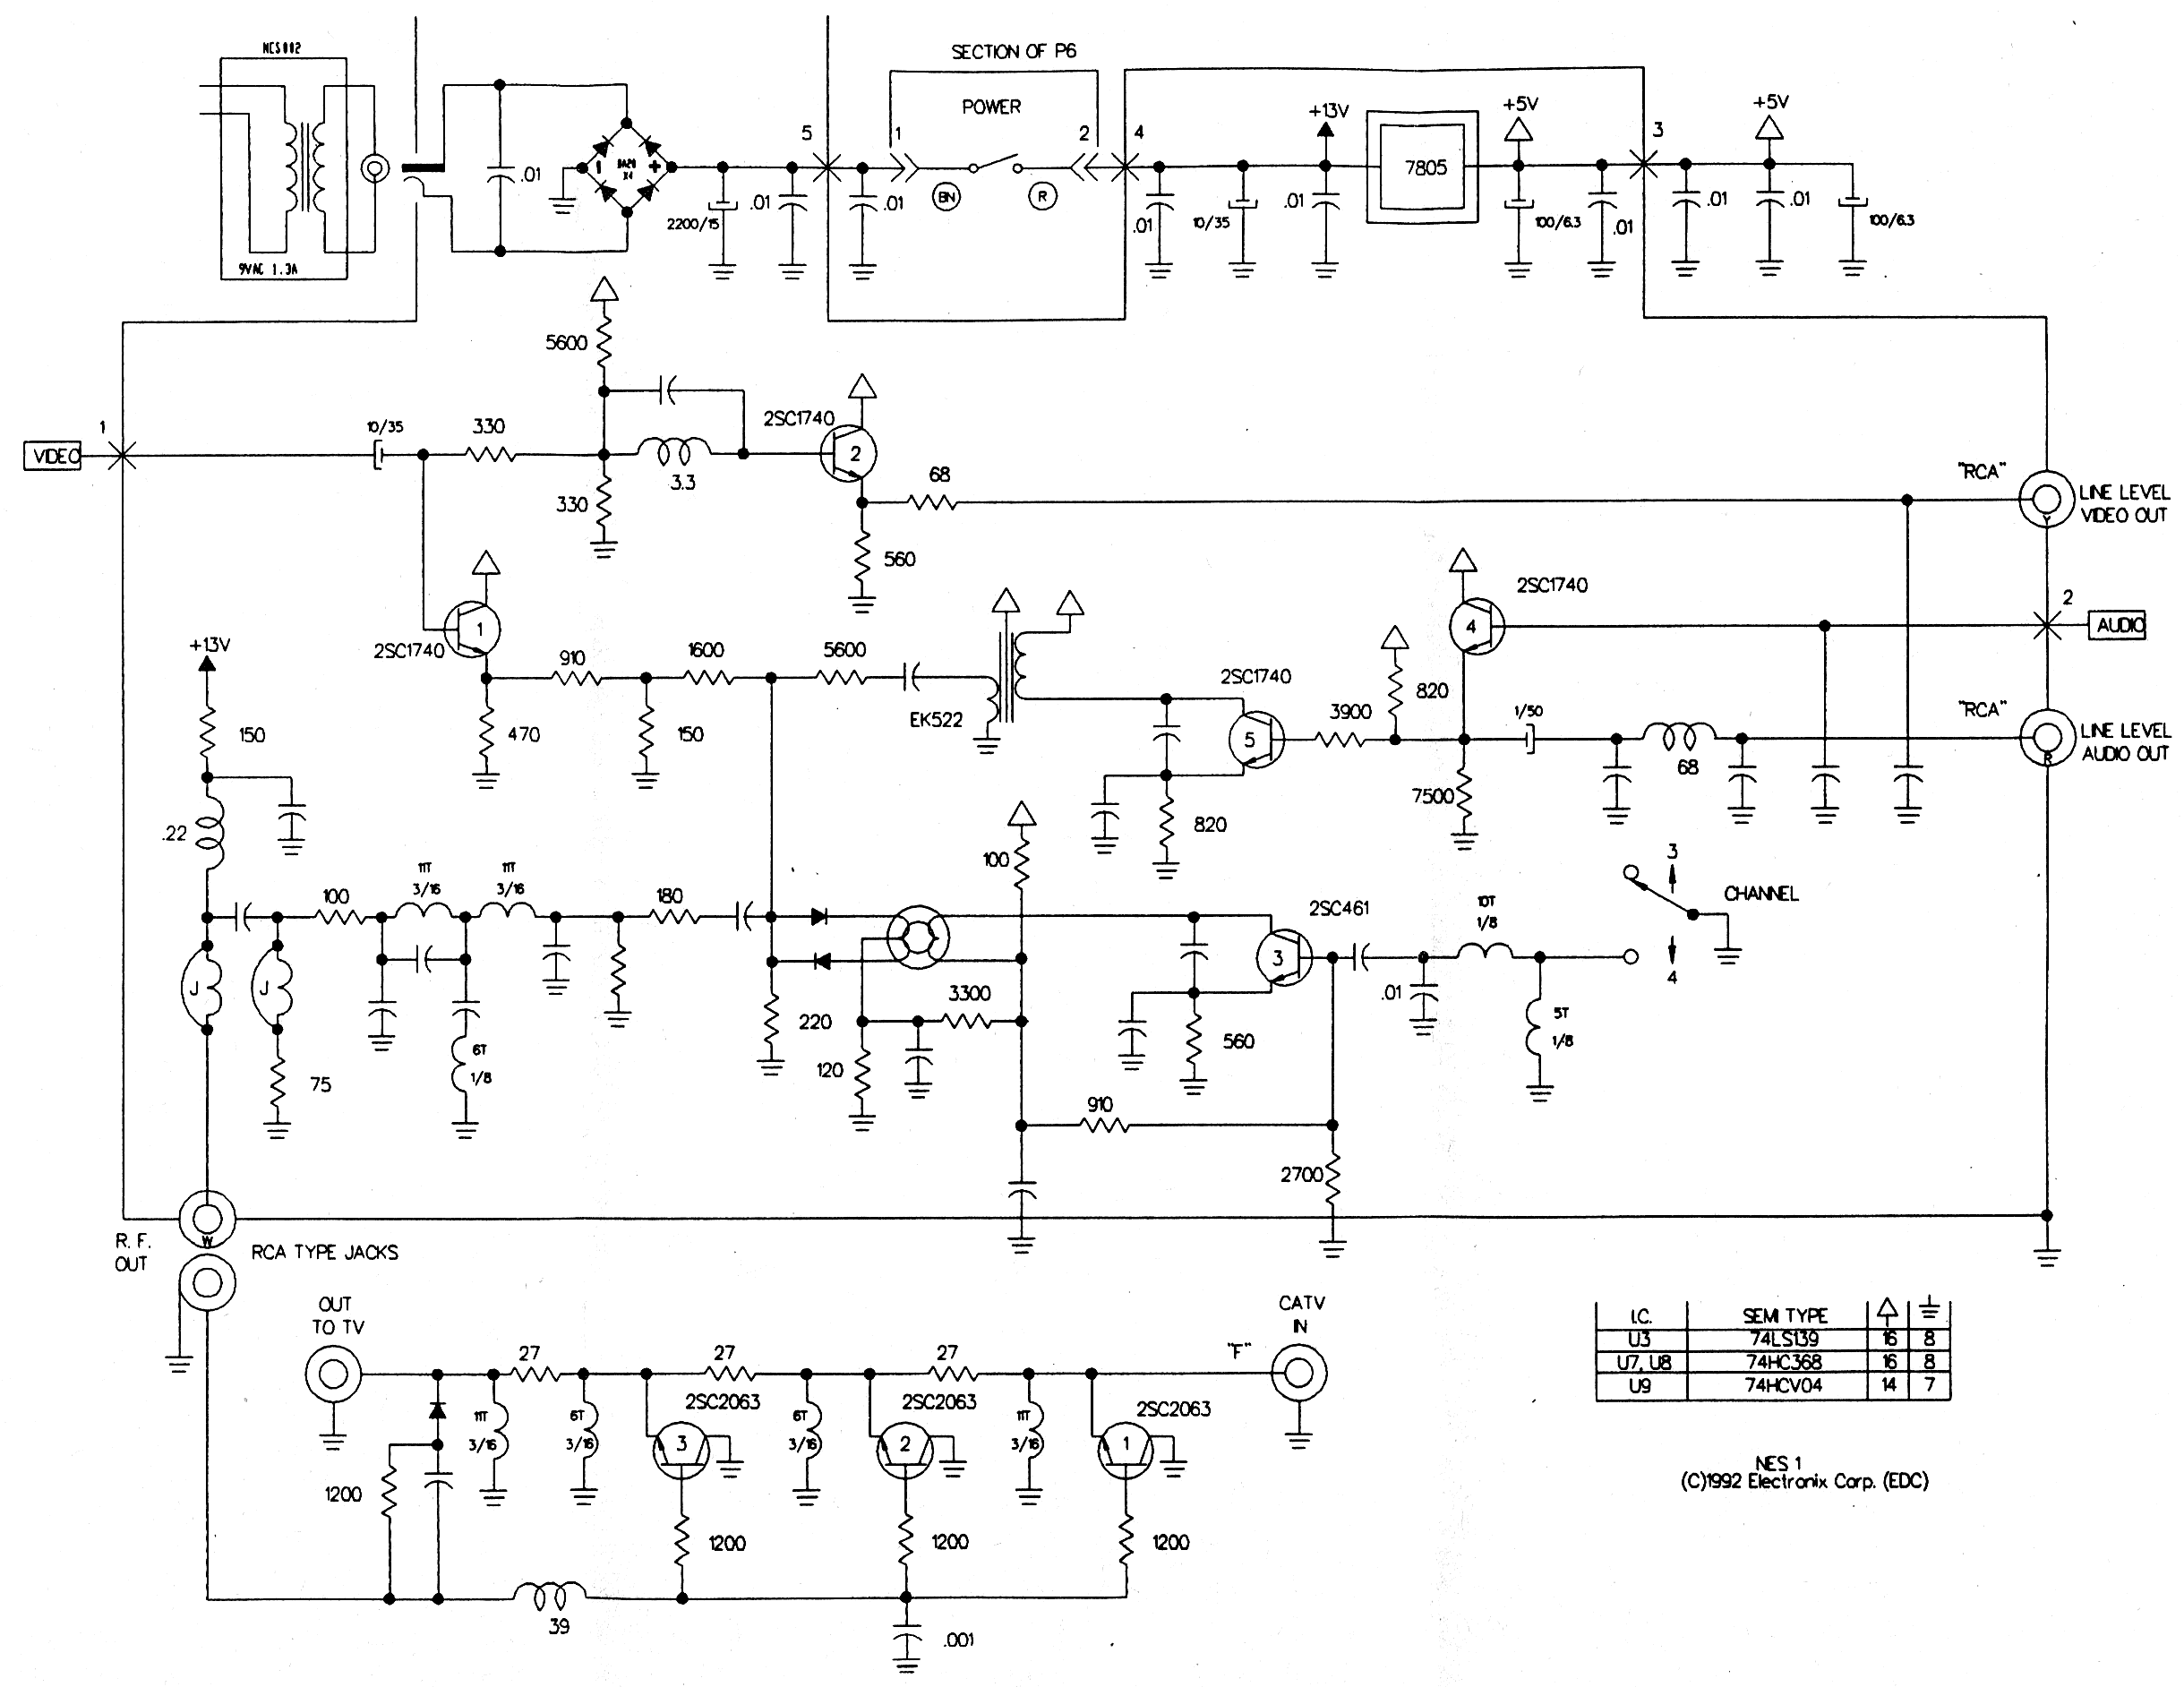 Bldc Motor Controller Circuit Diagram Electrical Wiring Dc Control Get Free Image About Nes Power Switch Schematic Brushless